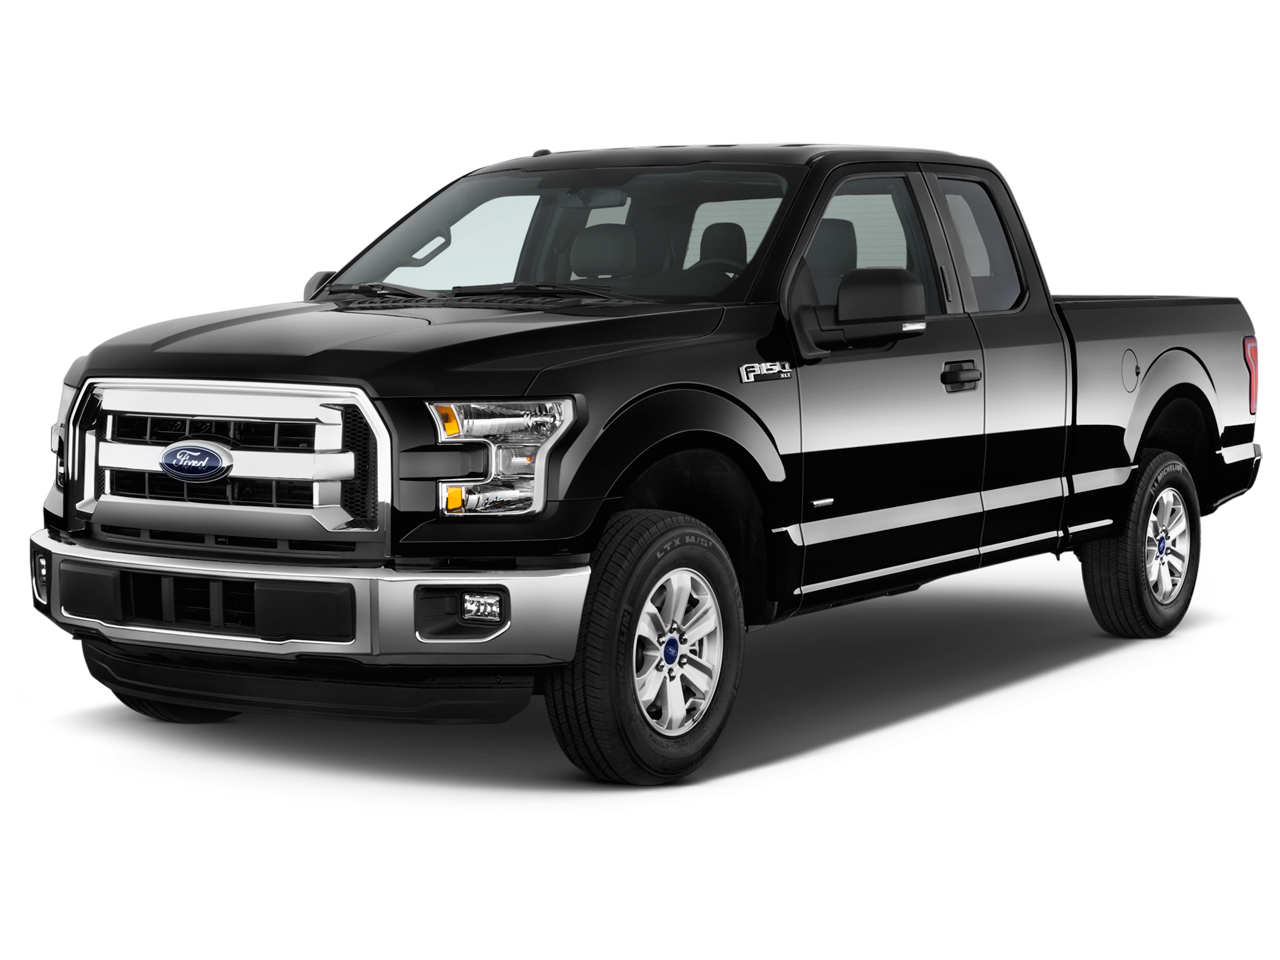 2017 ford f-150 png. New f lariat shelby